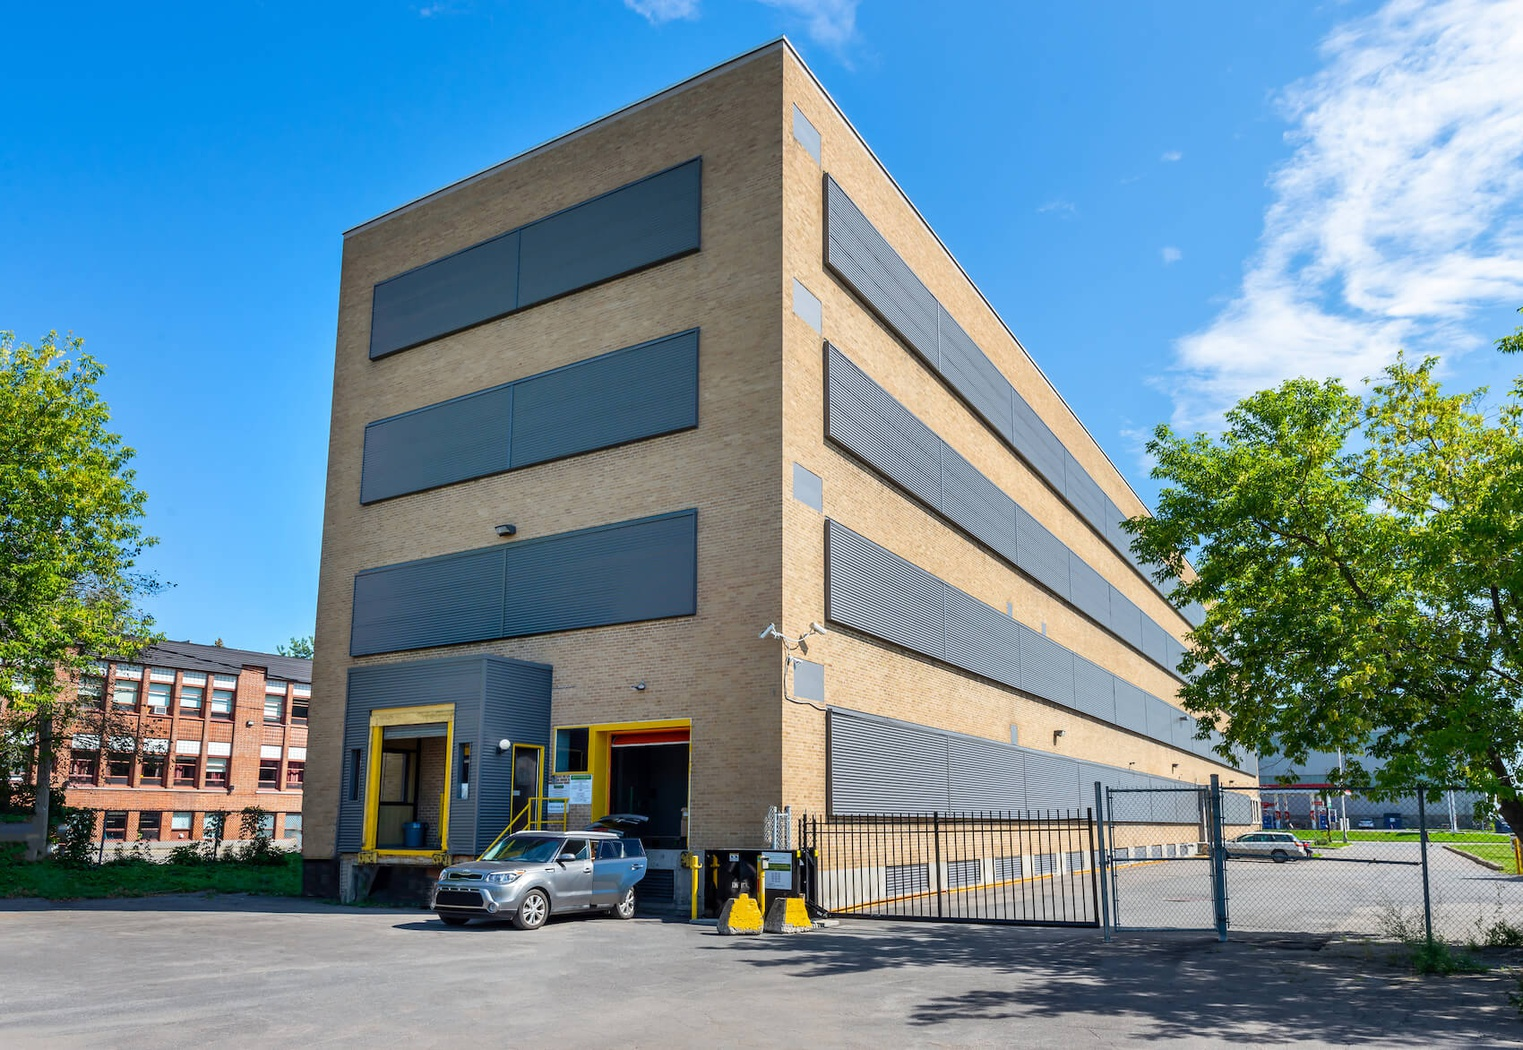 Rent Trois-Rivières storage units at 340 Boulevard du Saint Maurice. We offer a wide-range of affordable self storage units and your first 4 weeks are free!